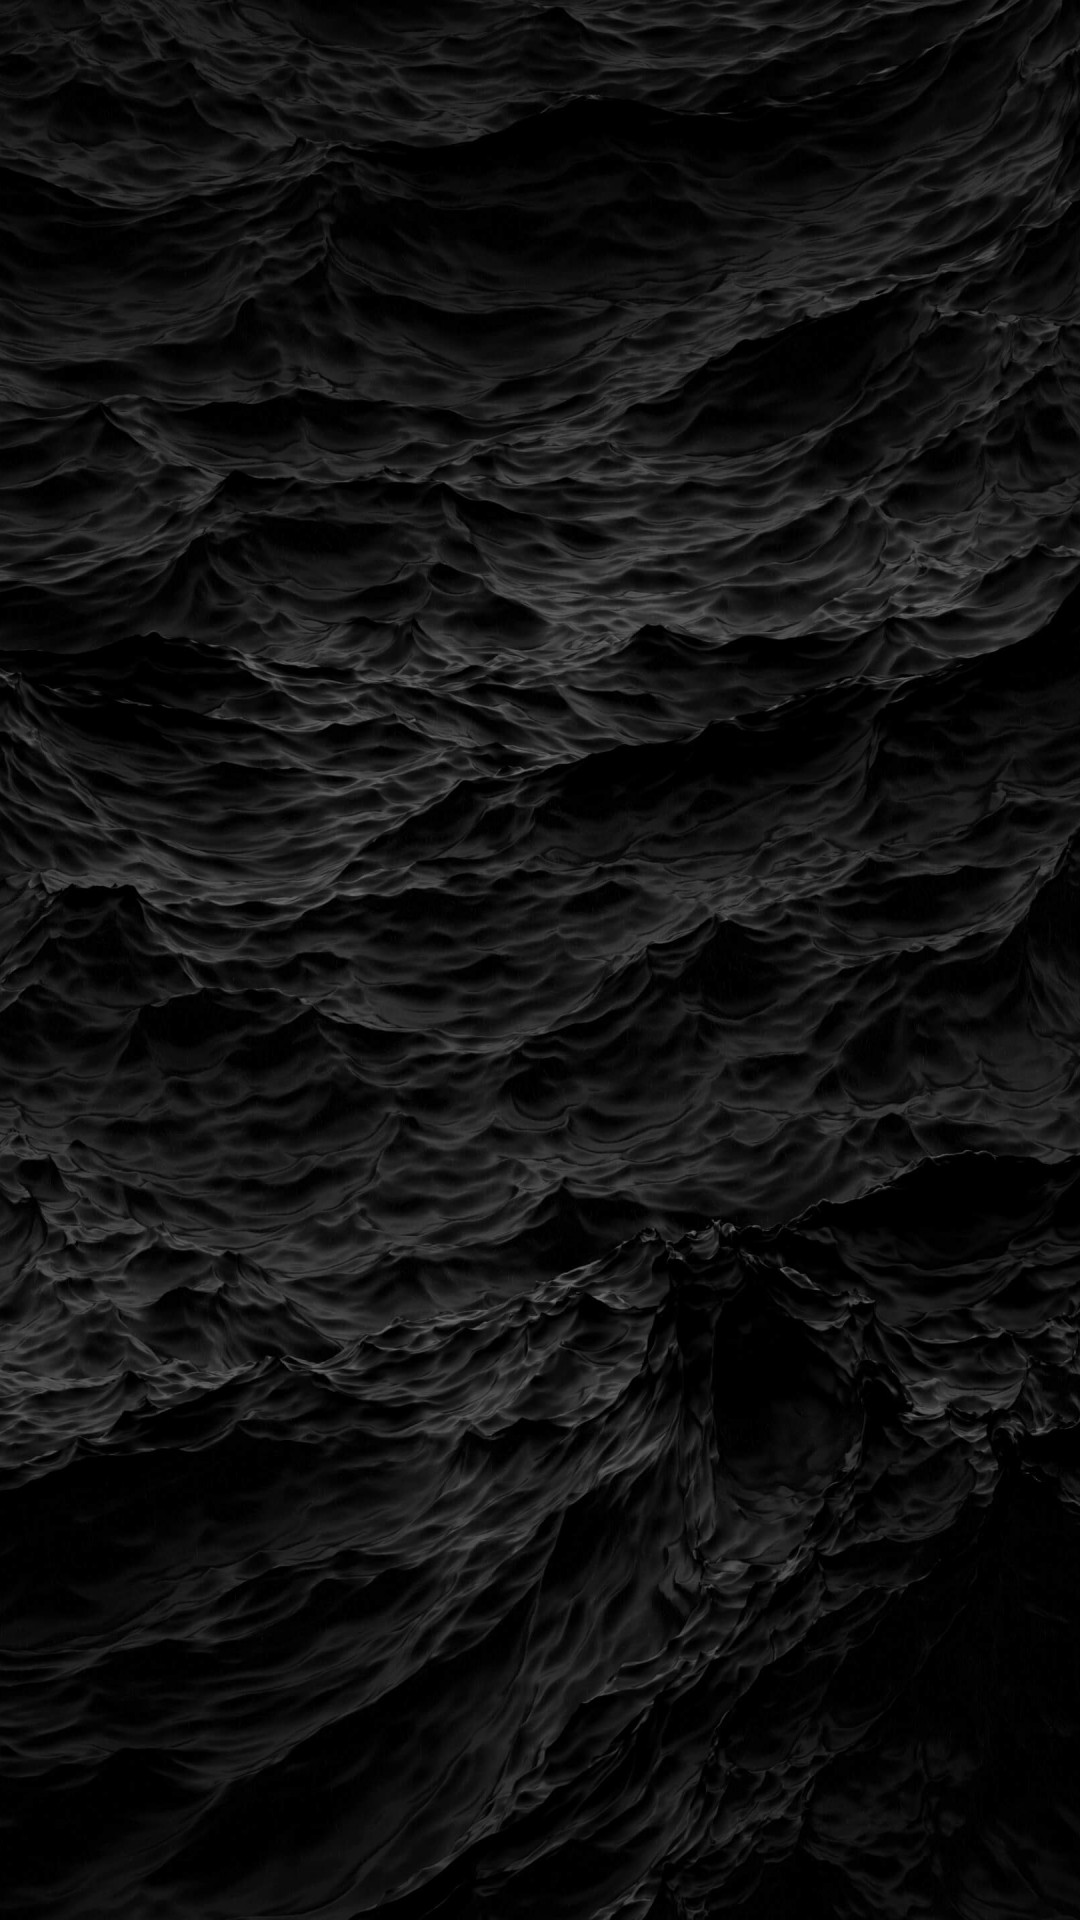 Black Waves Wallpaper for LG G2